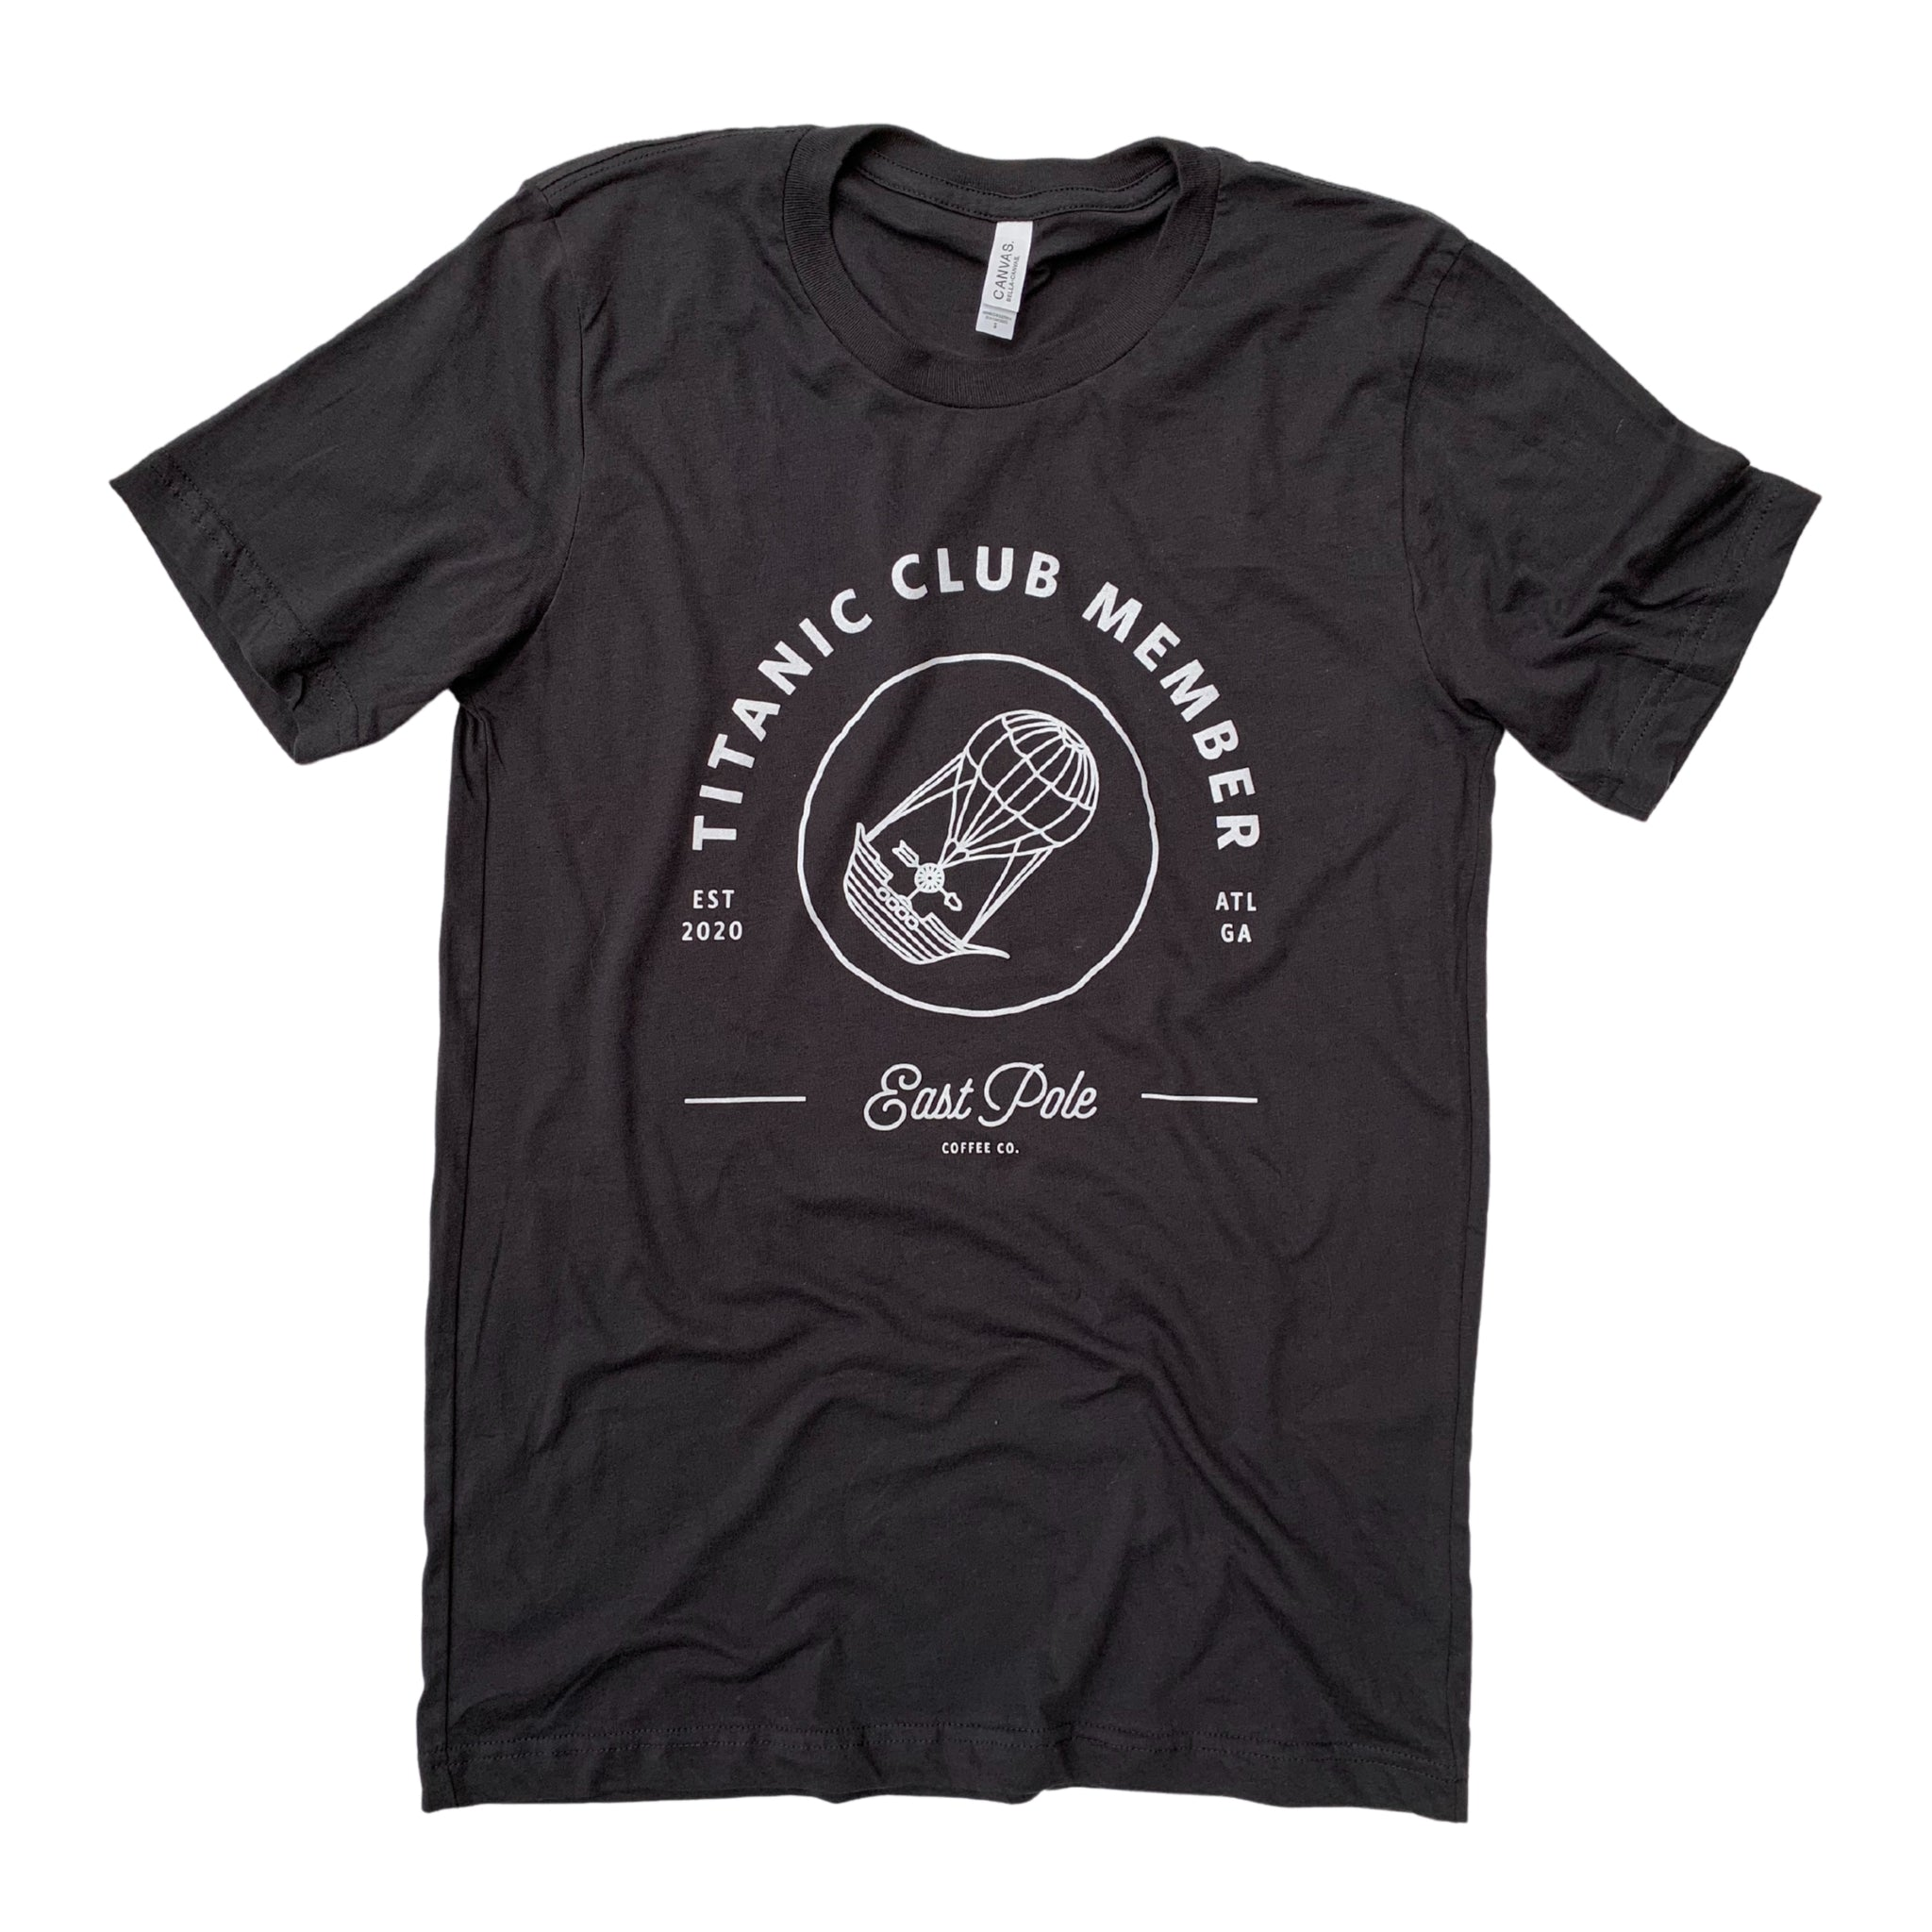 Titanic Club T-shirt